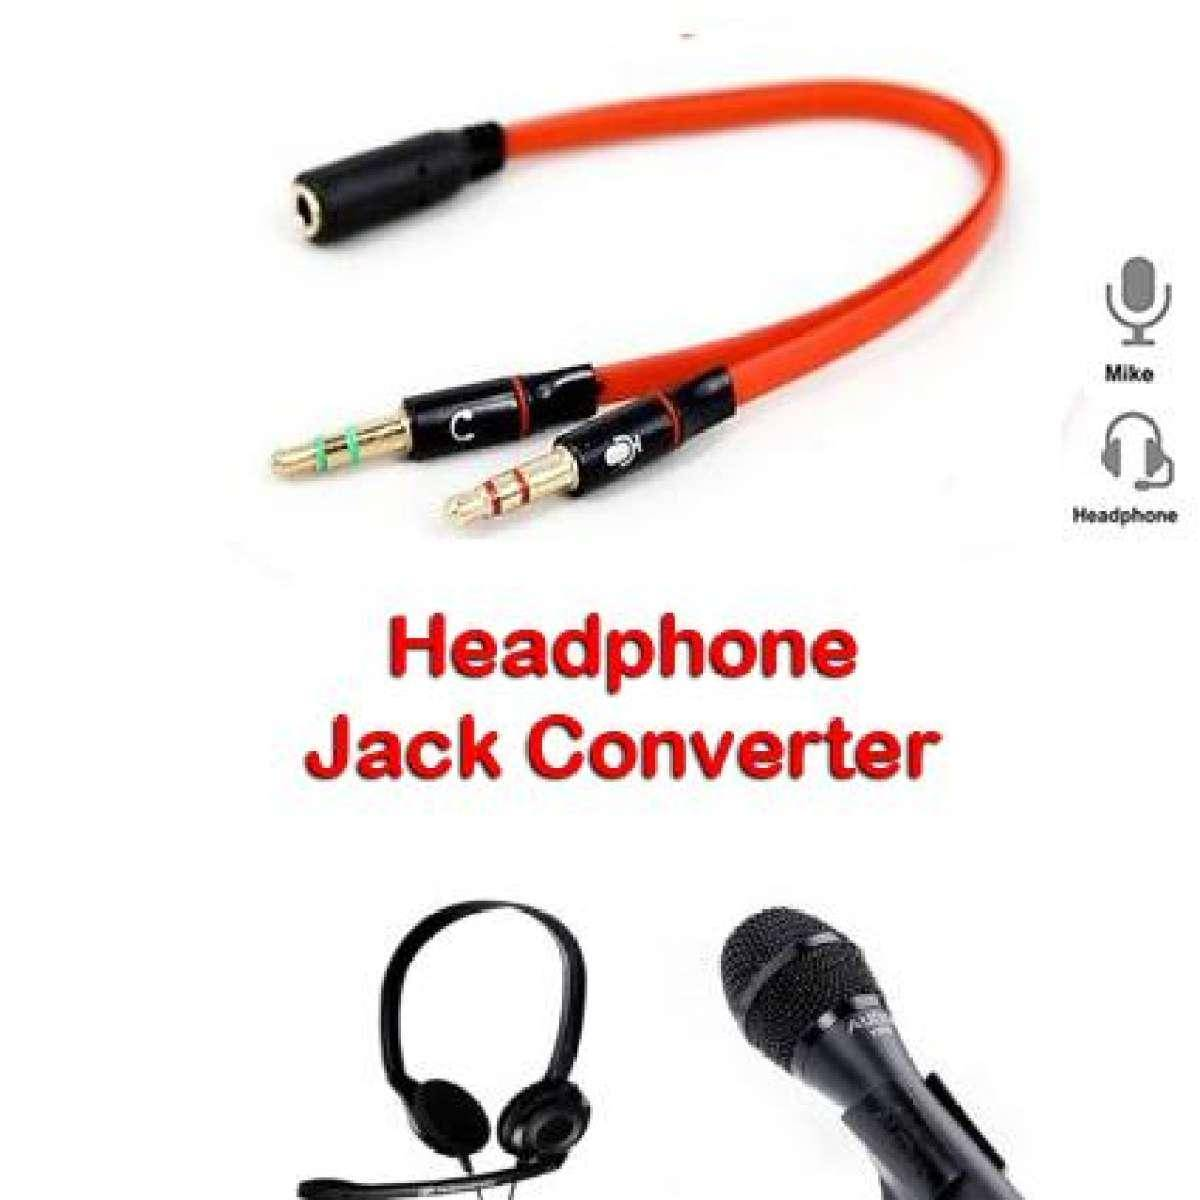 3.5mm Female to 2 Male Headphone Mic Audio Splitter Jack Cable Headset Adapter Kit Mutual Convertors for PS4,Xbox One S,Tablet,Mobile Phone,PC Gaming Headsets New Version Laptop Black and Red